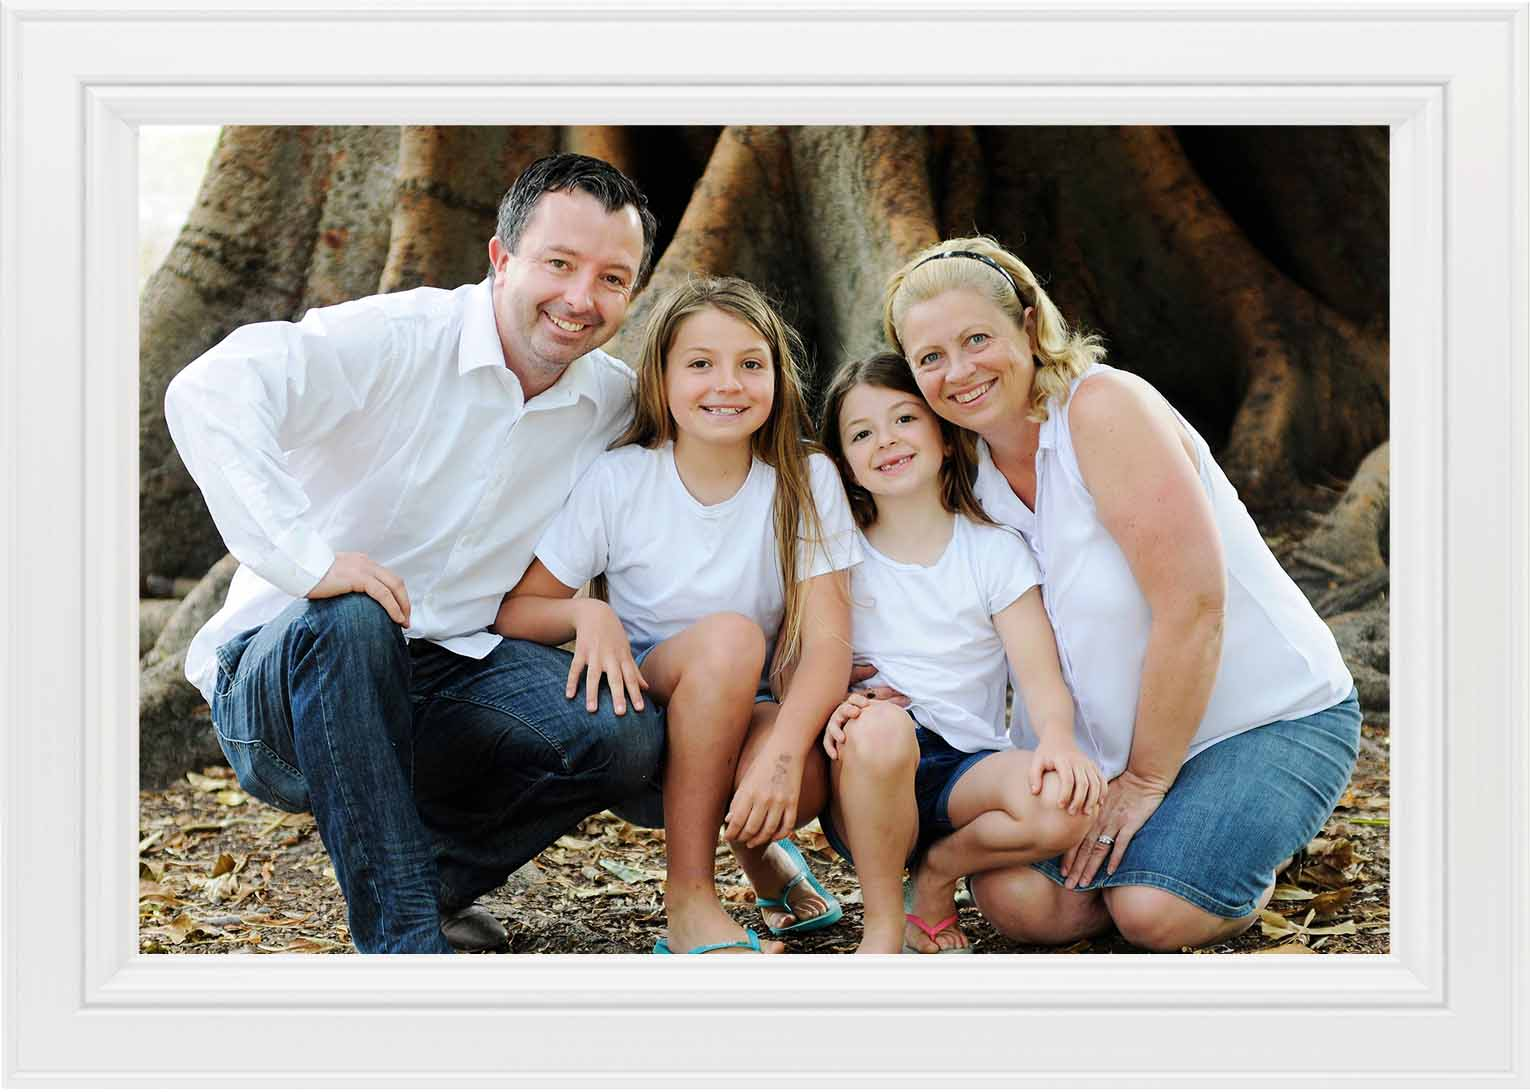 Smart Photo Video - Brosnan Photography_Family